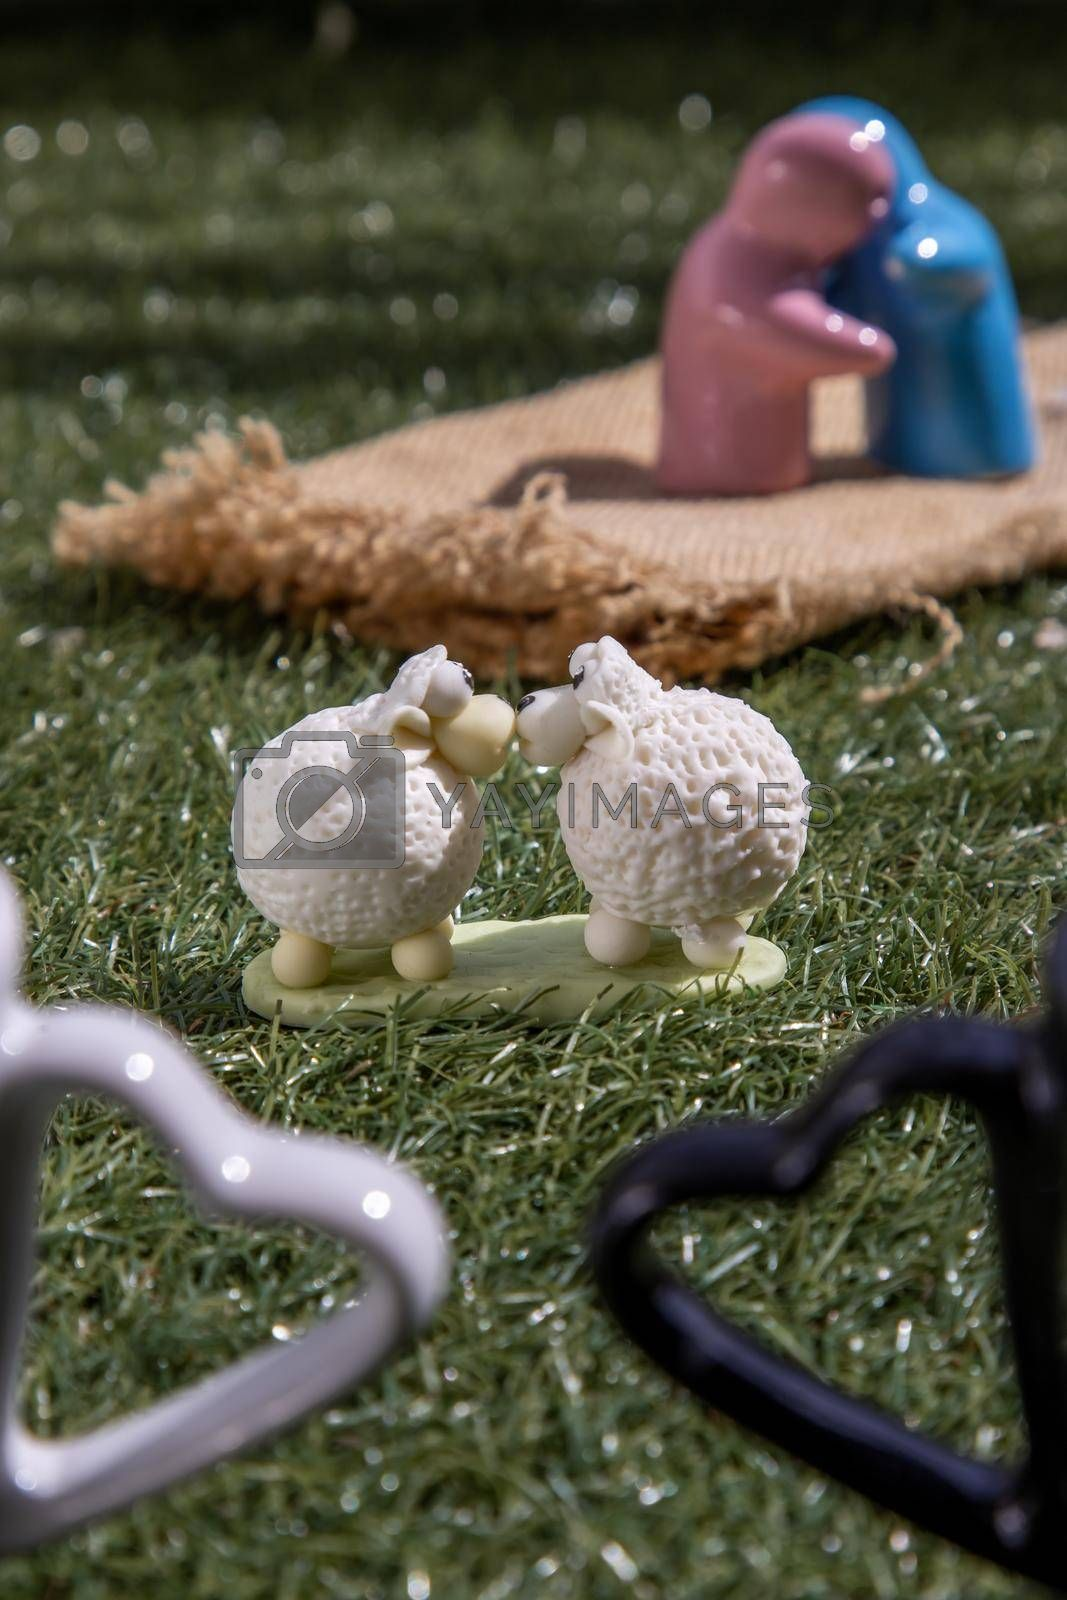 Ceramic couple dolls hug and Sheep ceramic couple dolls Kissing on lawn. Concept for anniversary, Wedding and eternal love concept, Romance wedding or Valentine's day.